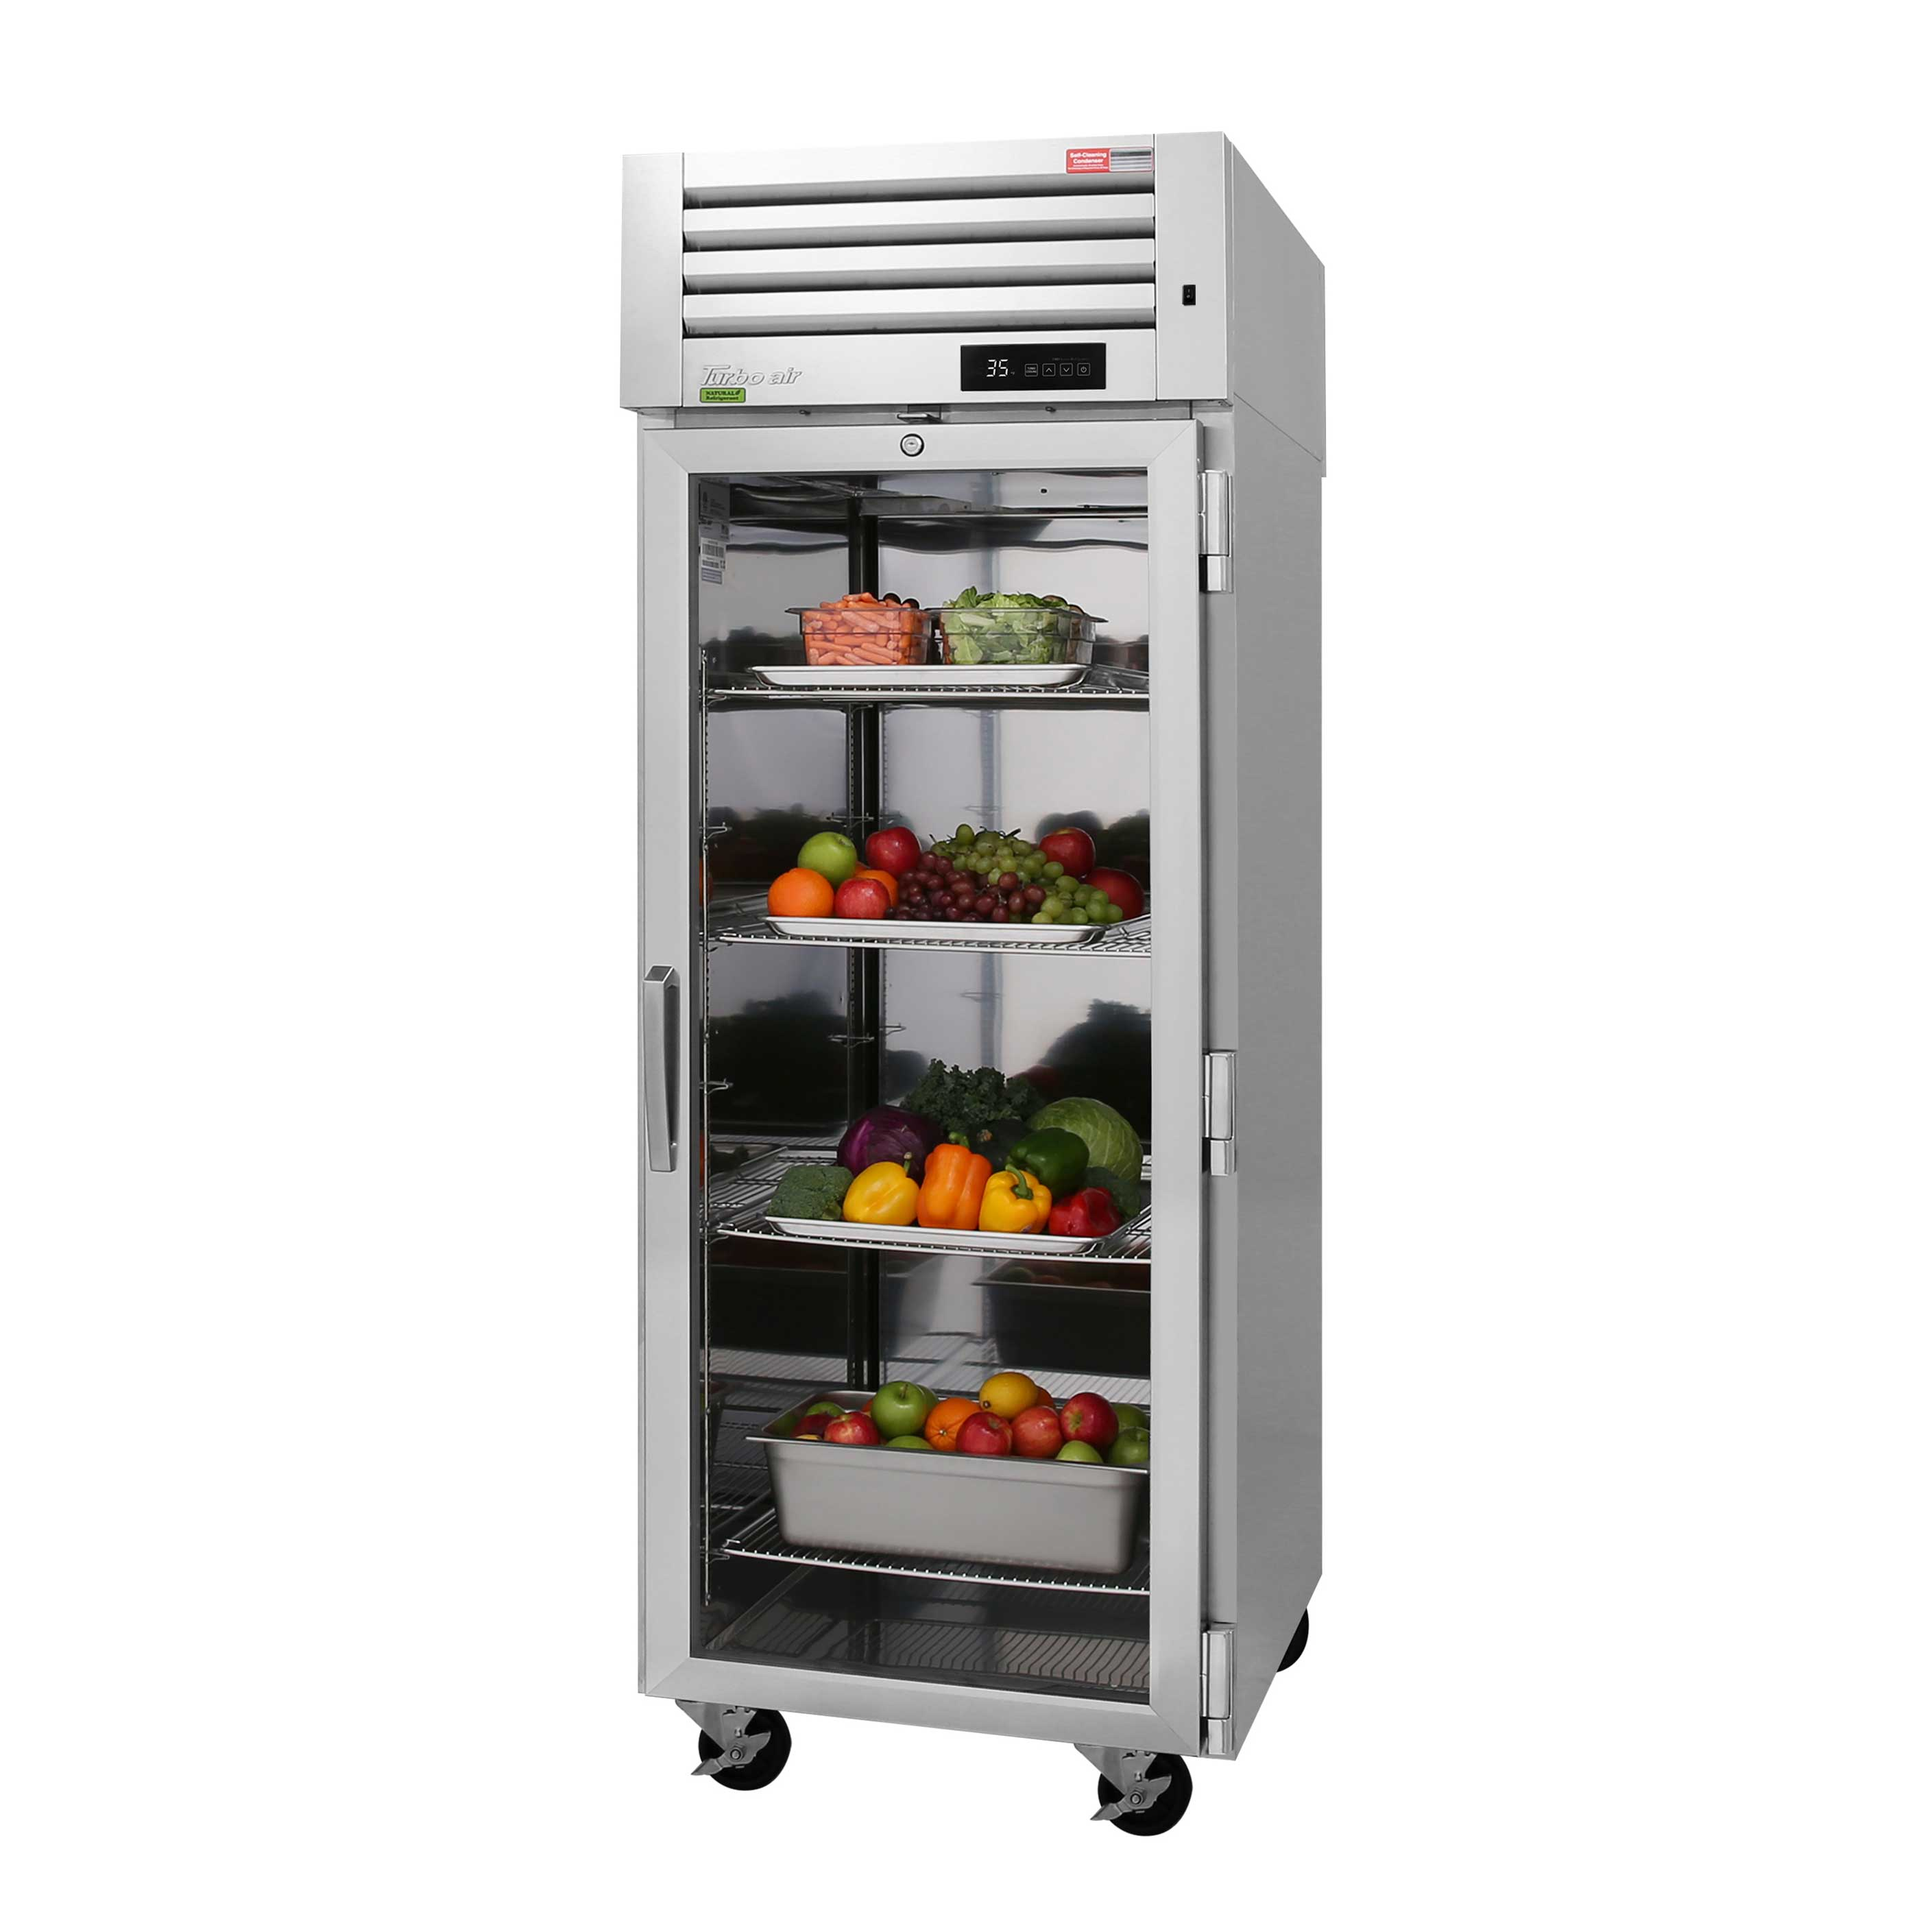 Turbo Air PRO-26R-GS-PT-N refrigerator, pass-thru